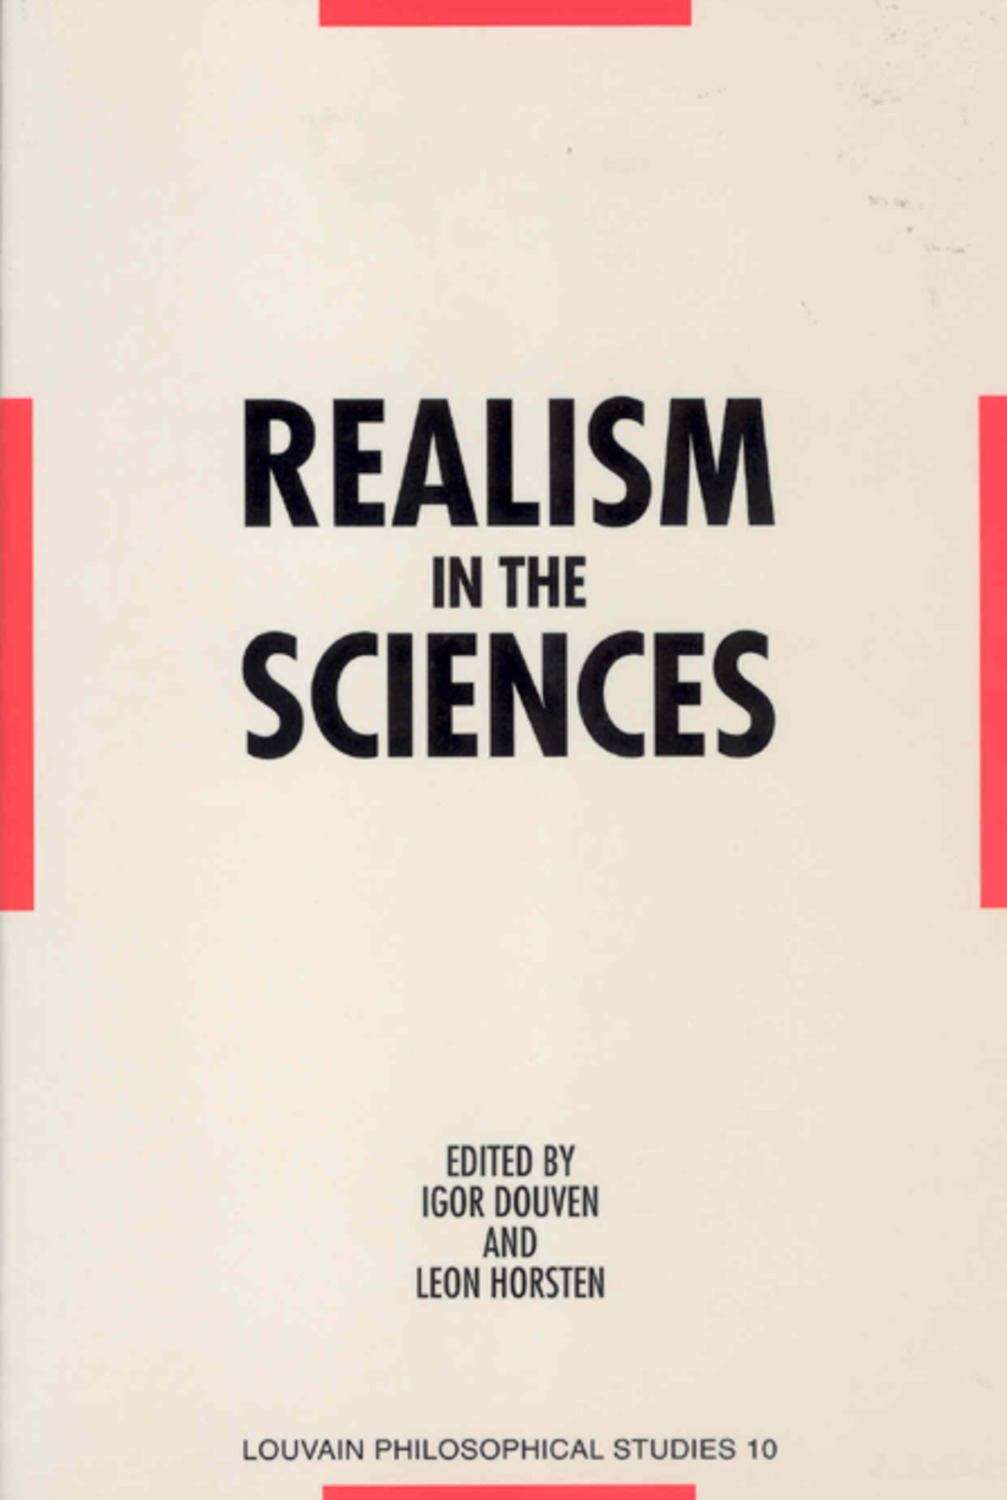 Realism in the Sciences